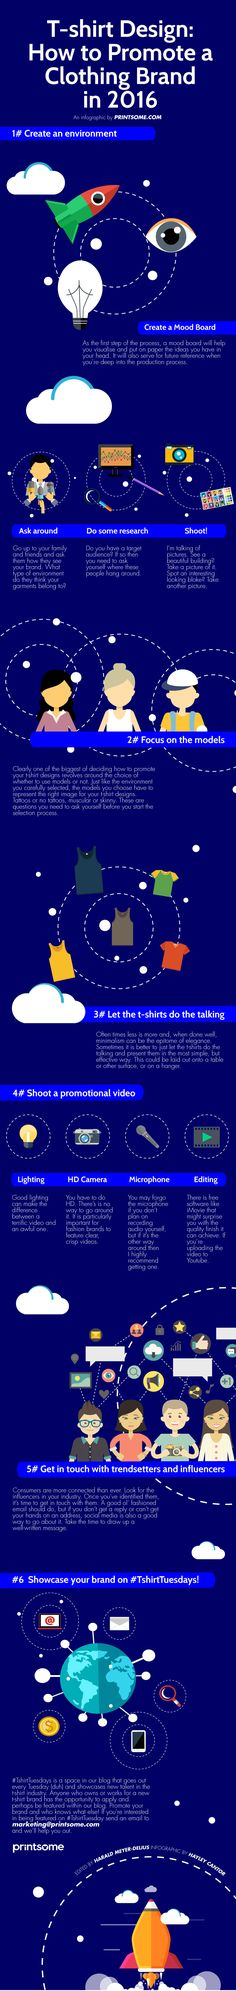 How to promote a clothing brand in 2016: THE INFOGRAPHIC! #clothingbrand #brandpromoting #tshirtdesign